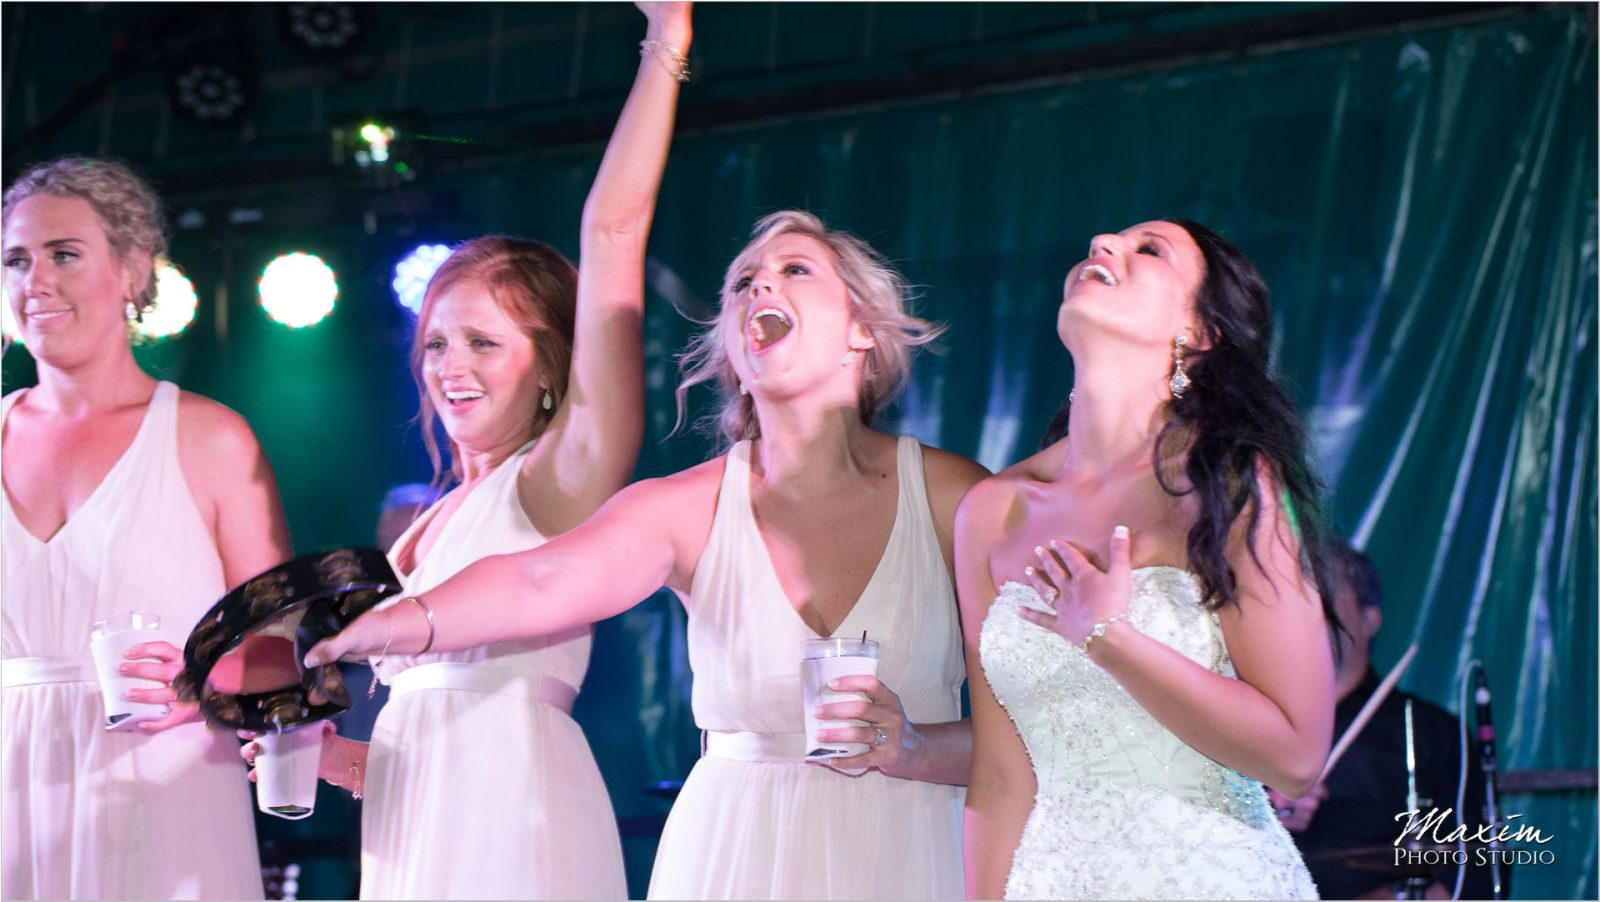 Moonlight Gardens Coney Wedding Reception dance bridesmaids